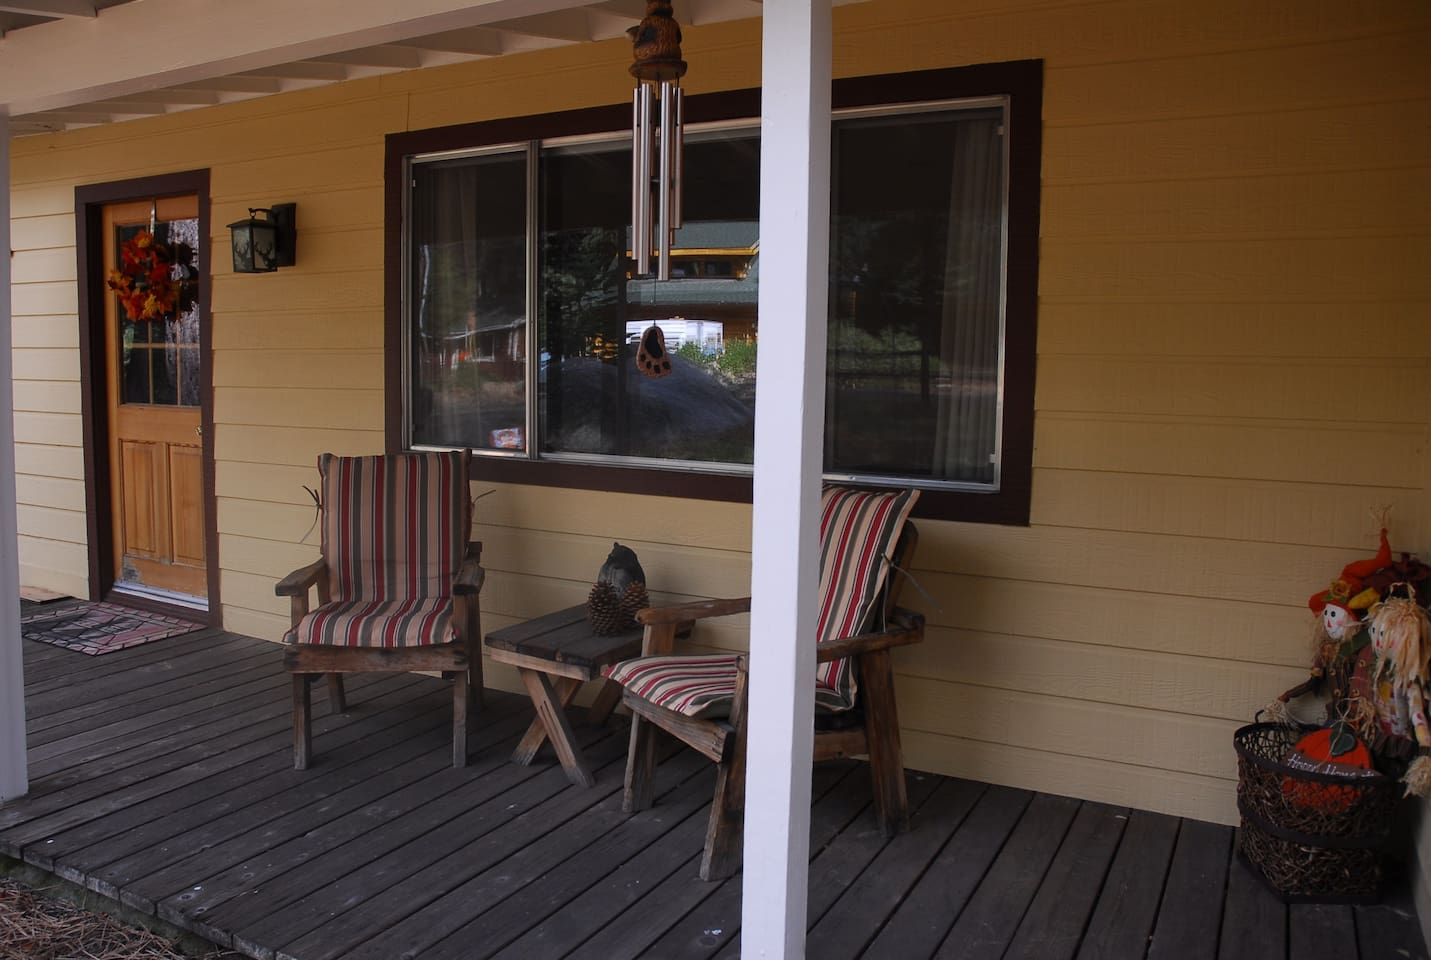 Enjoy the surroundings on the front porch